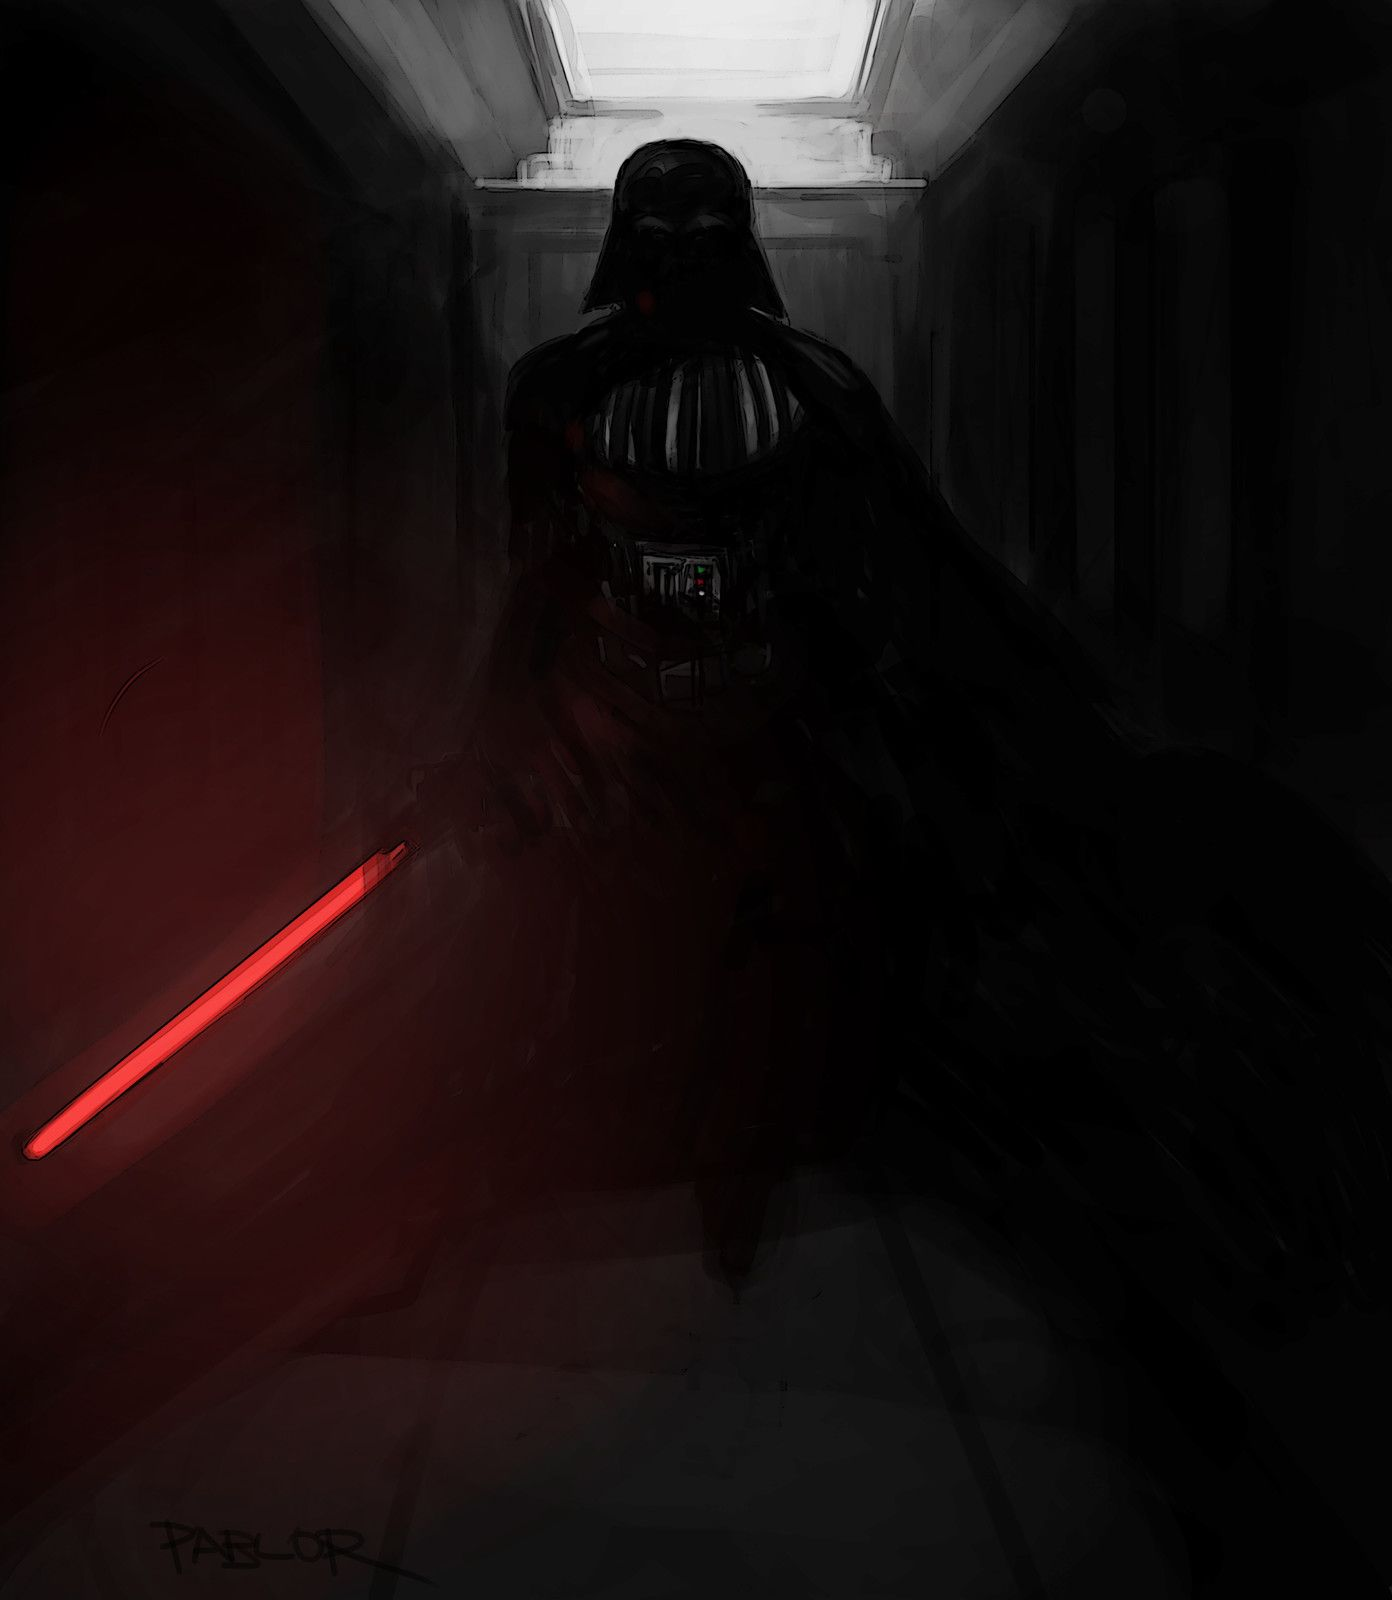 Darth Vader Rogue One Pablo Rivera On Artstation At Https Www